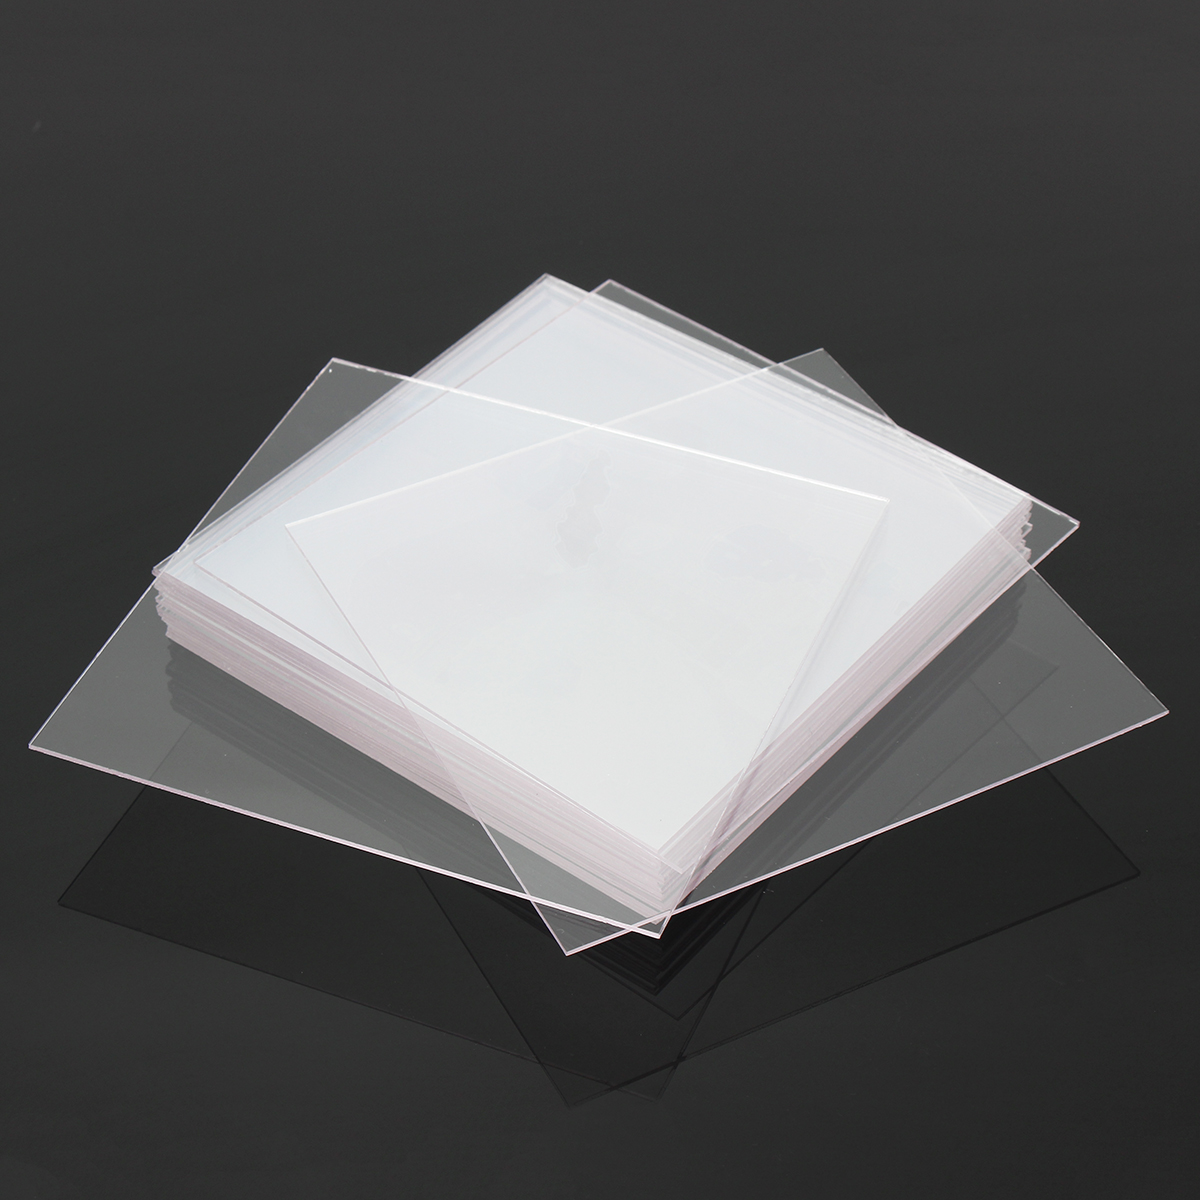 20Pcs 1.0mm Dental Lab Splint Thermoforming Hard Plastic Sheet for Vacuum Forming Dental Tools